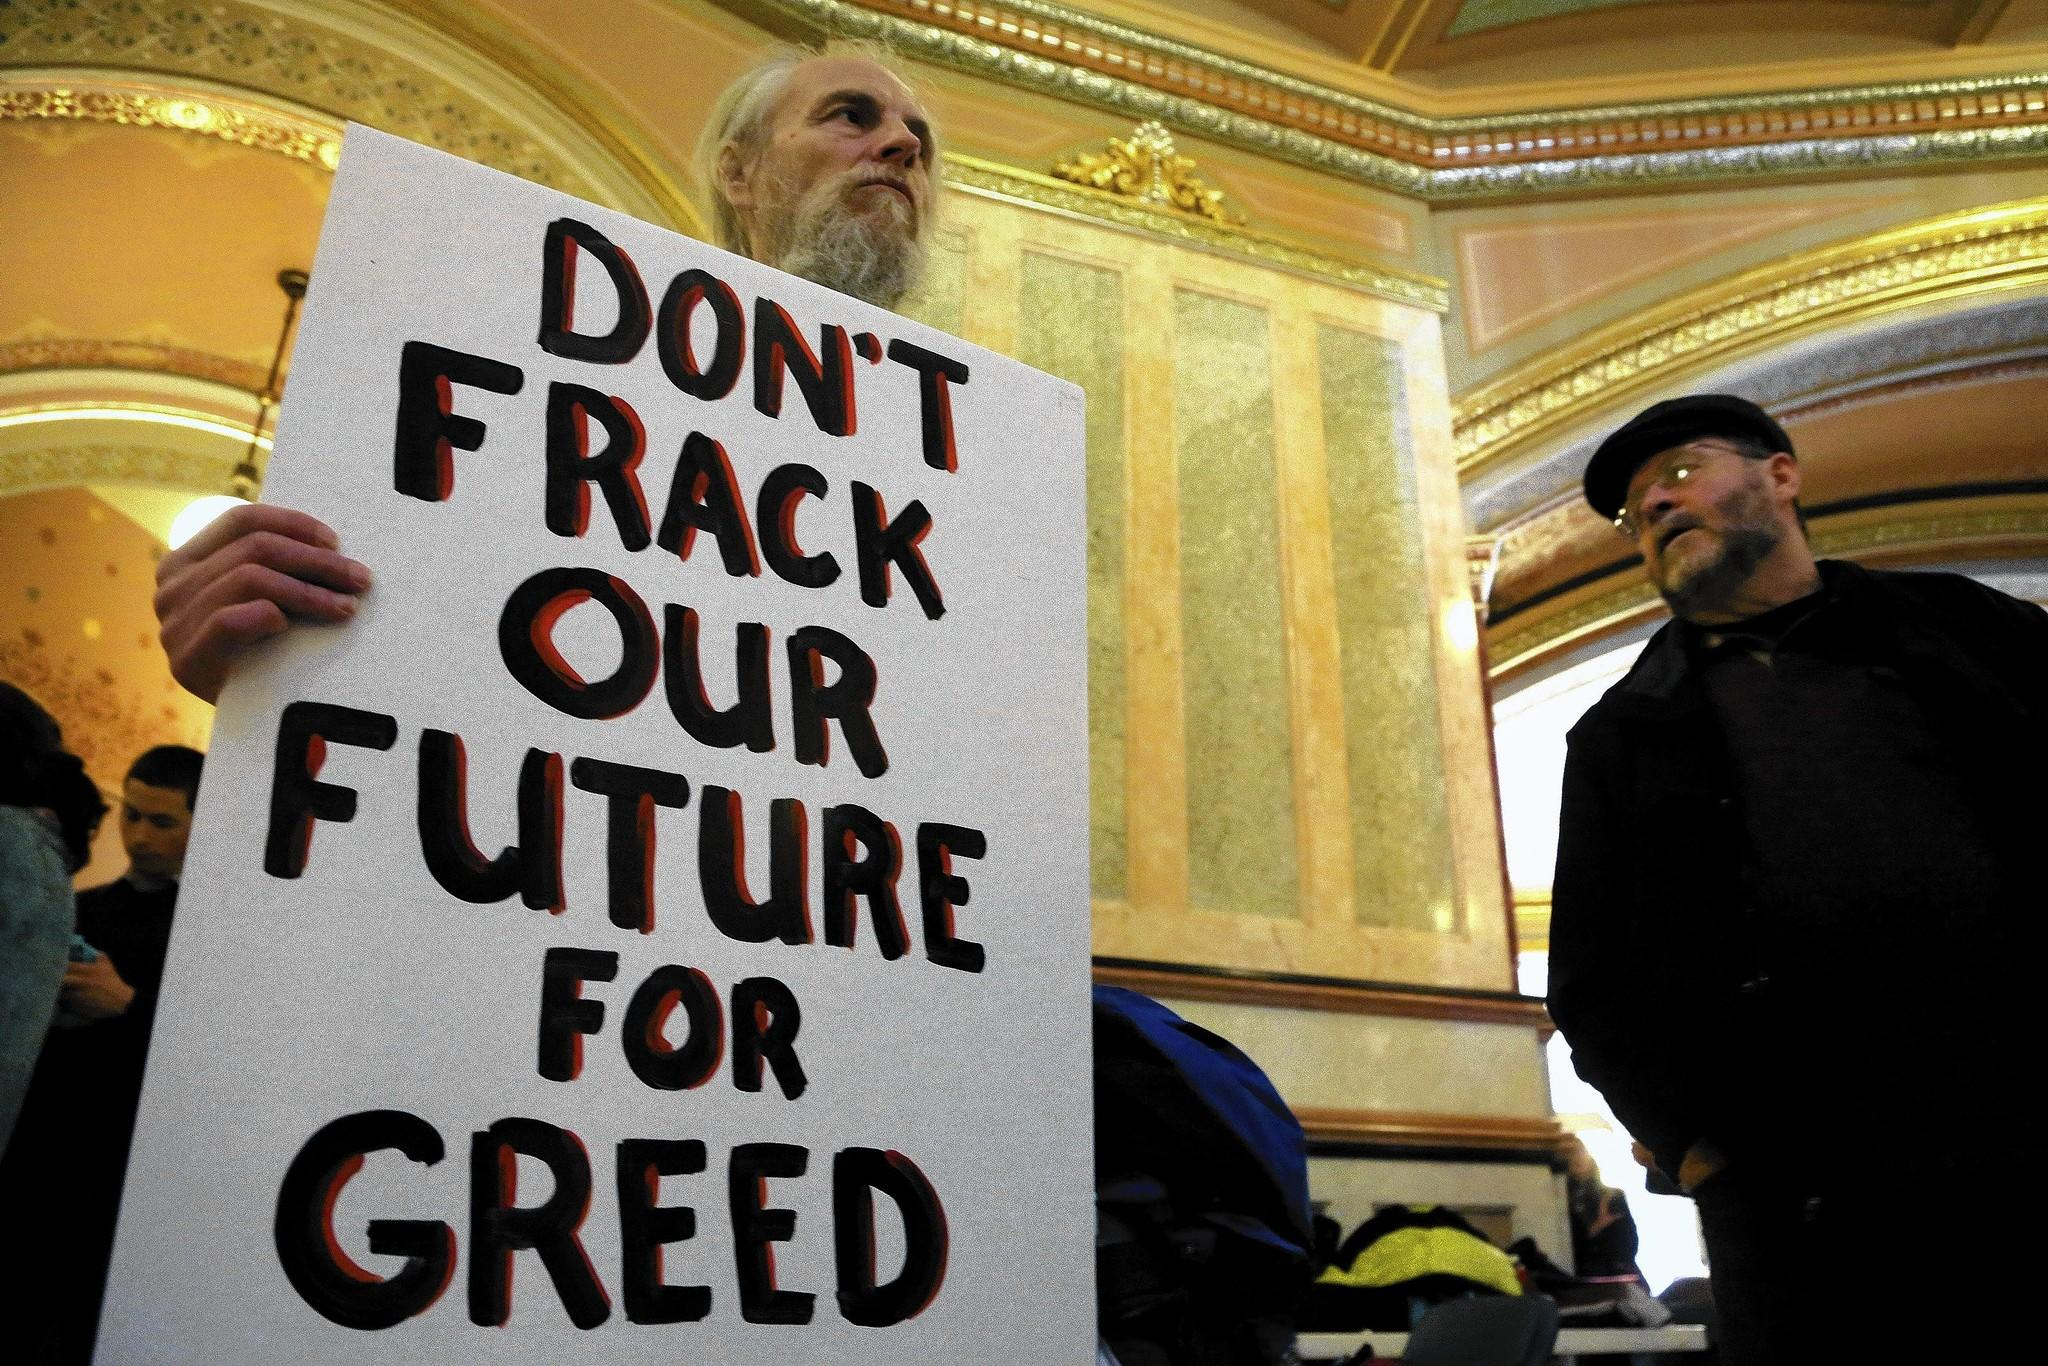 Gregg Brown protests at the Illinois Capitol in Springfield in support of a moratorium on fracking.